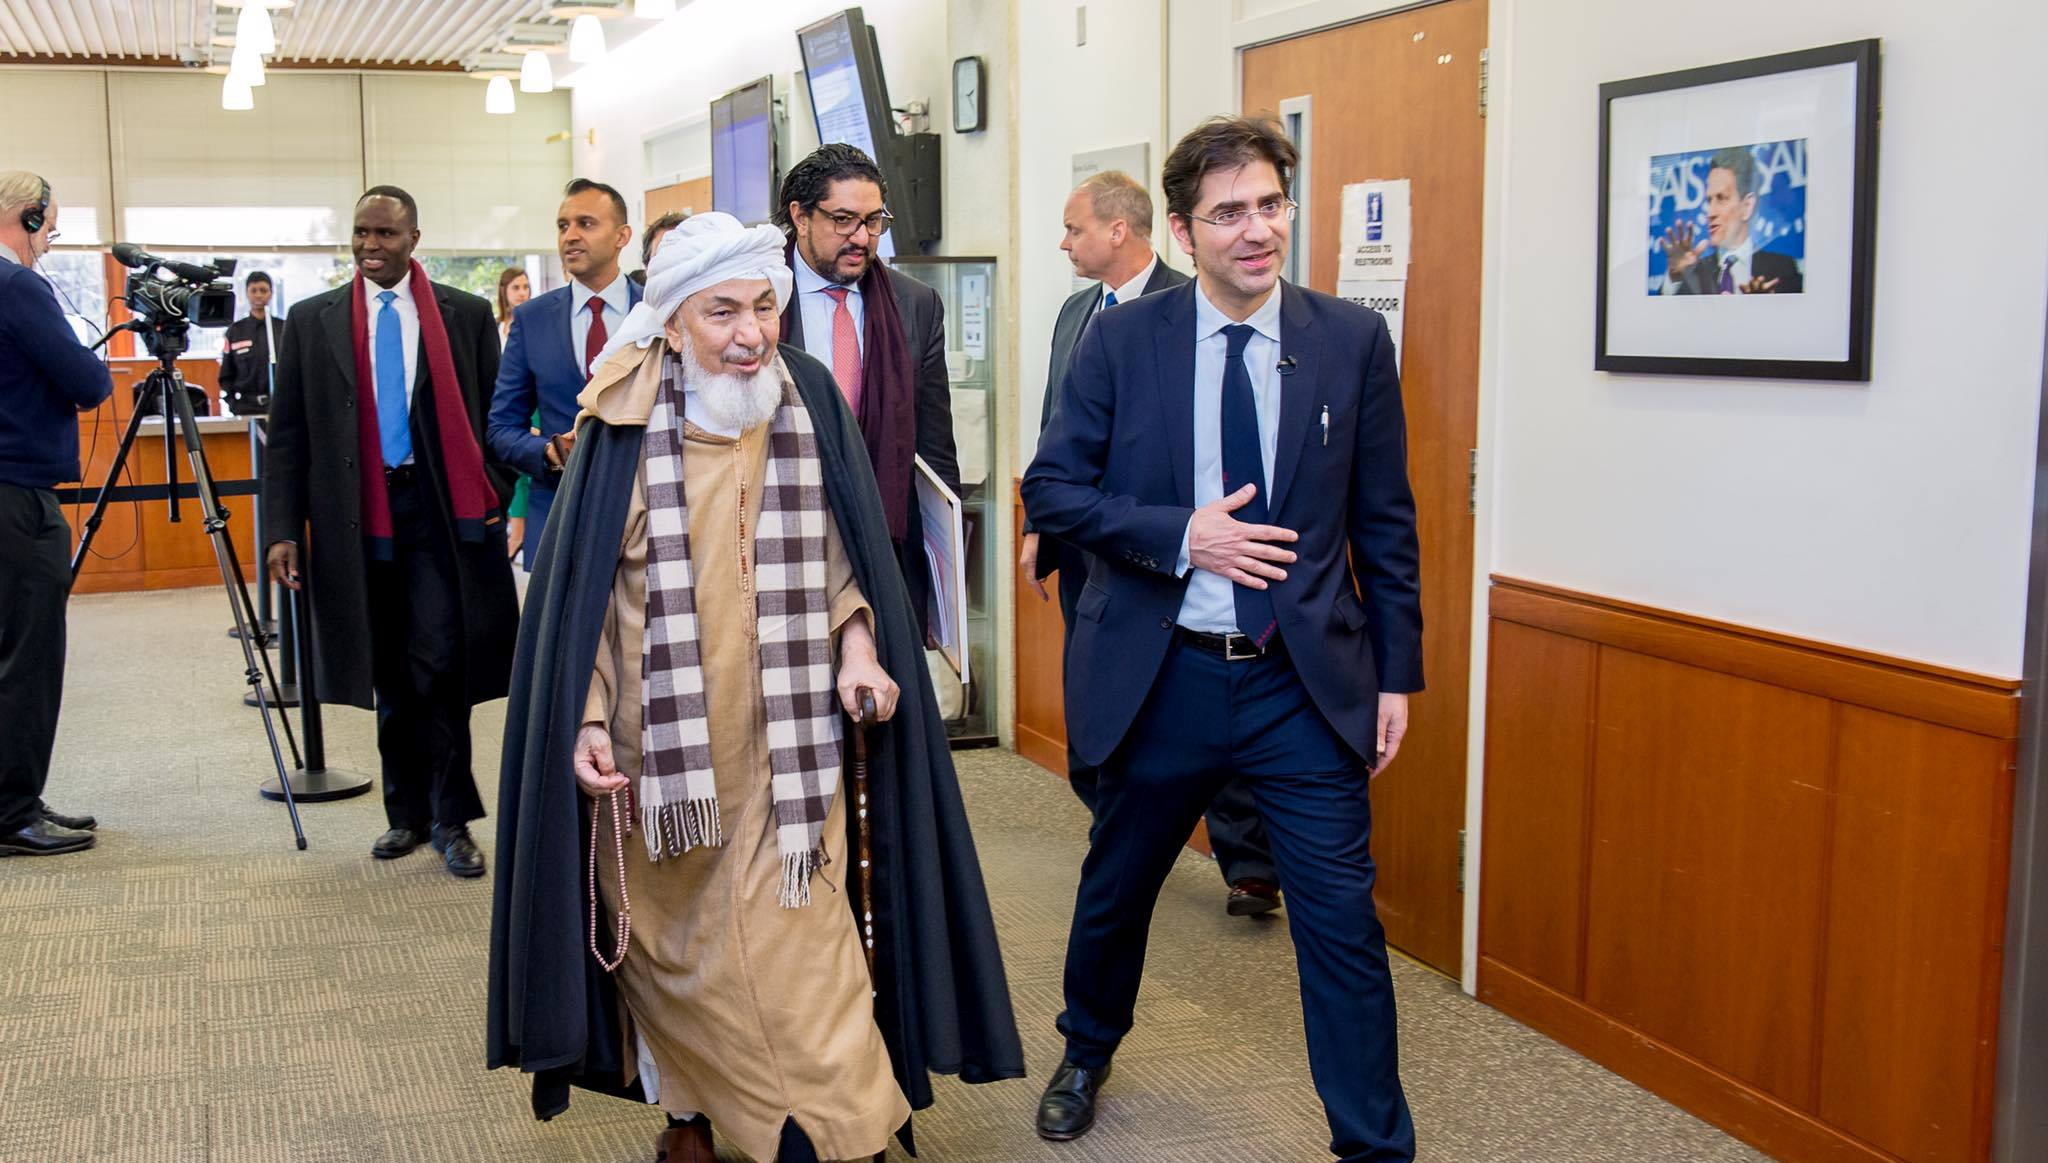 Sheikh Abdullah bin Bayyah at Johns Hopkins University